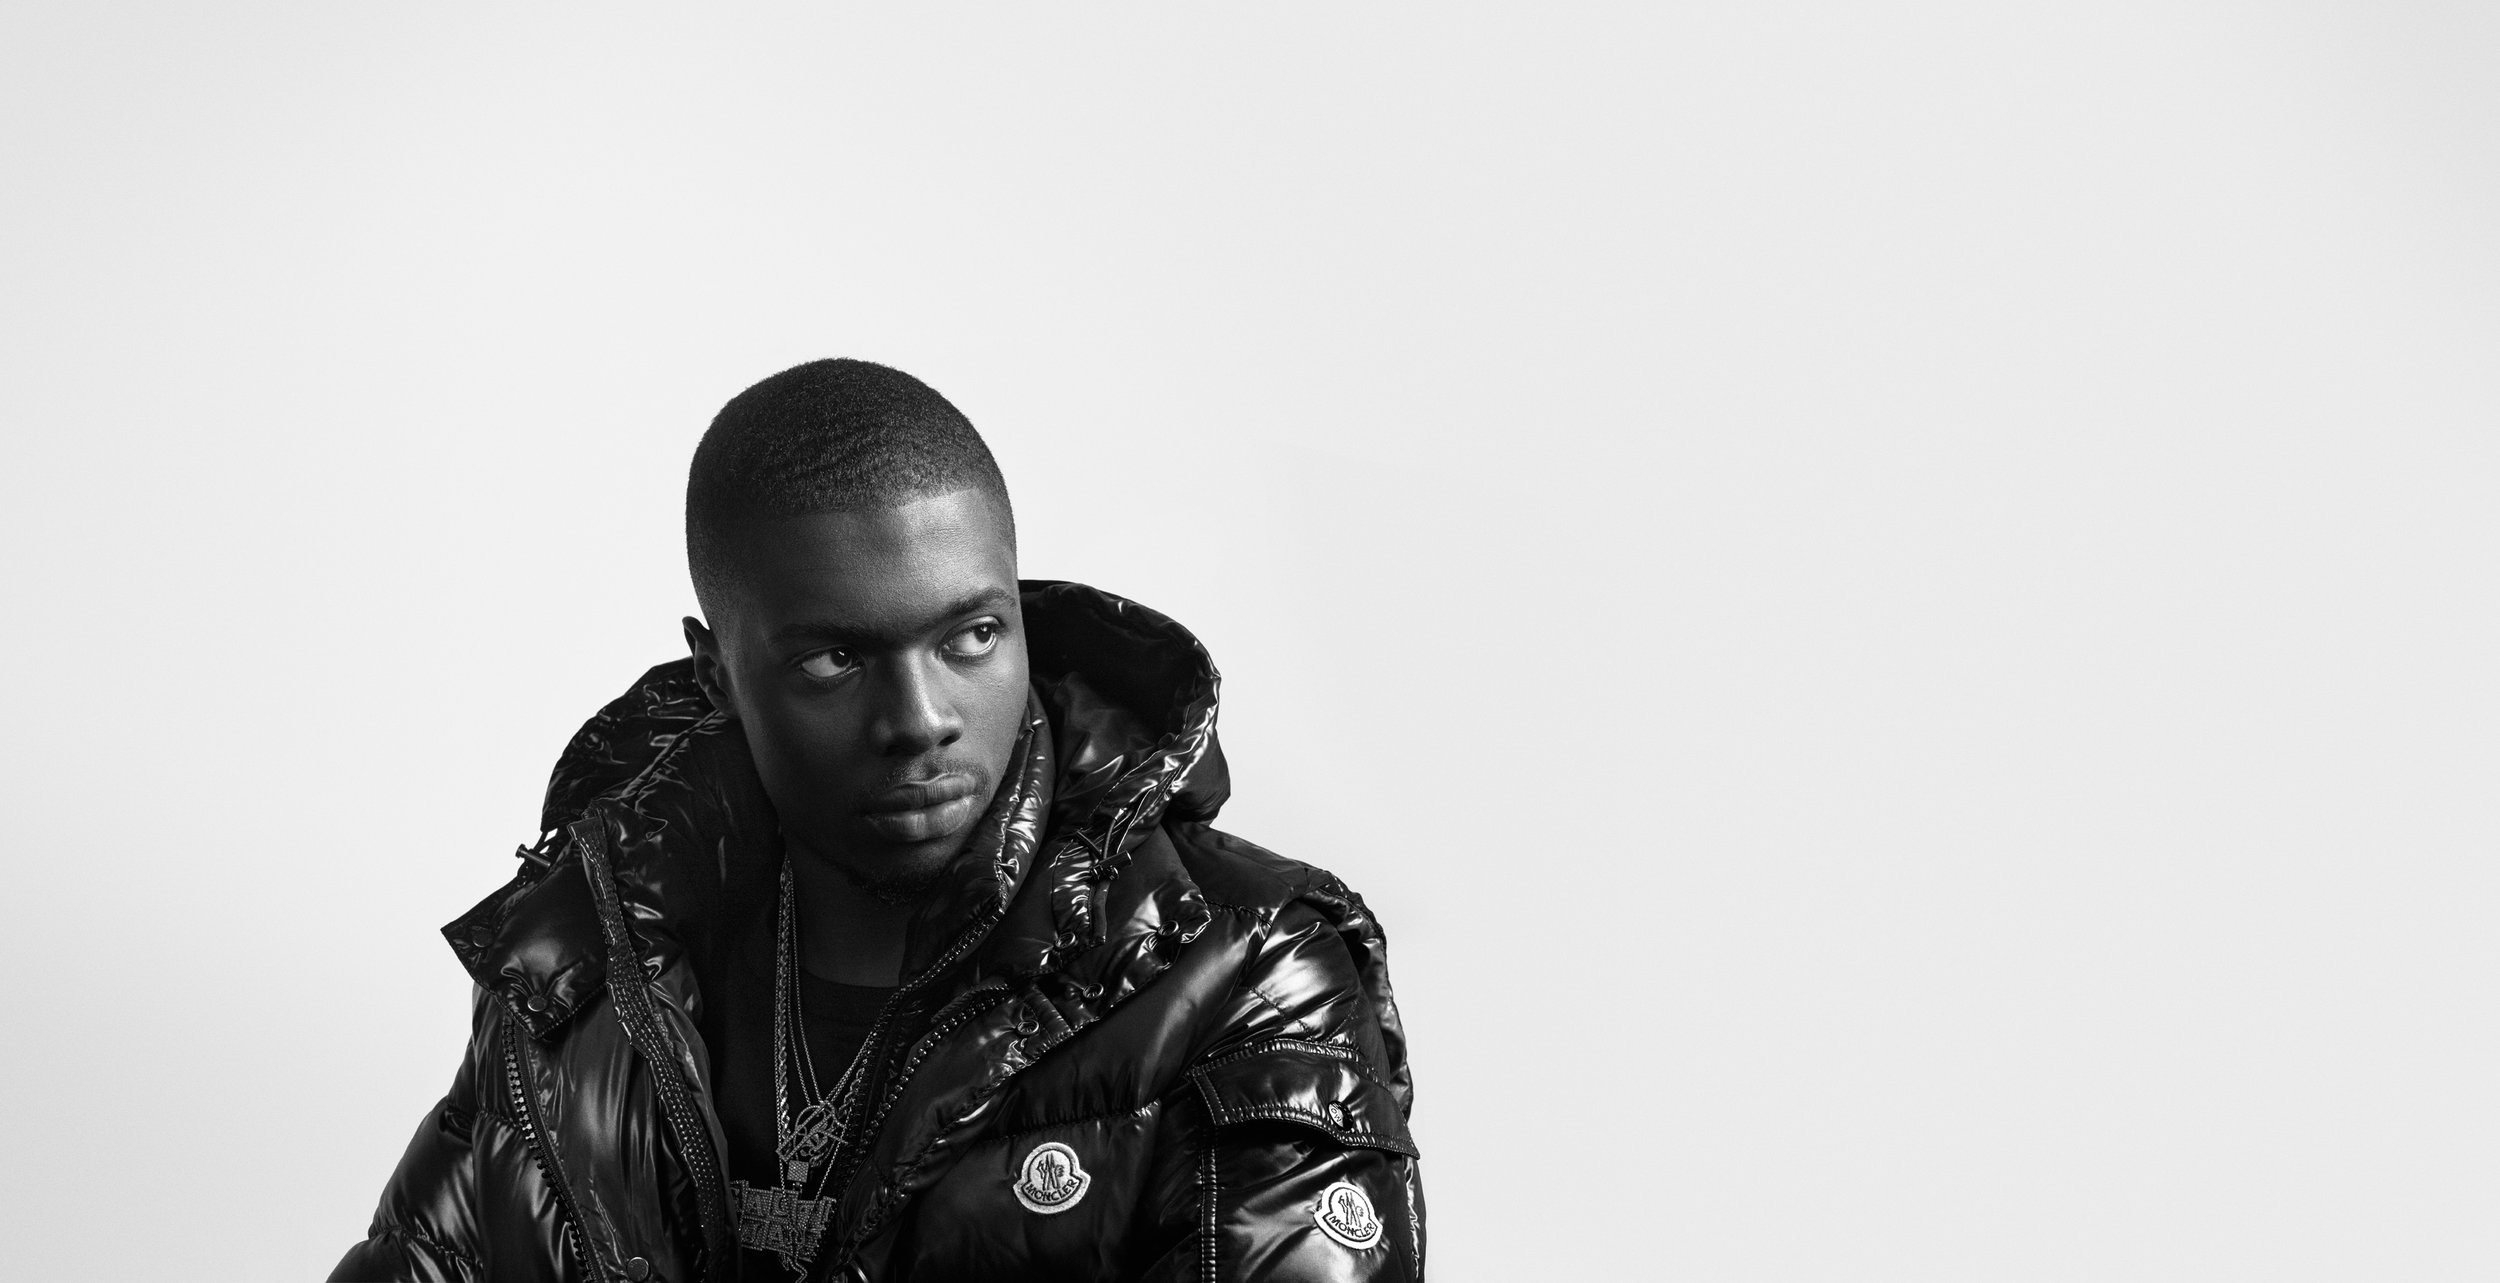 MONCLER BEYOND ADV CAMPAIGN FW 18-19_SHECK WES.jpg